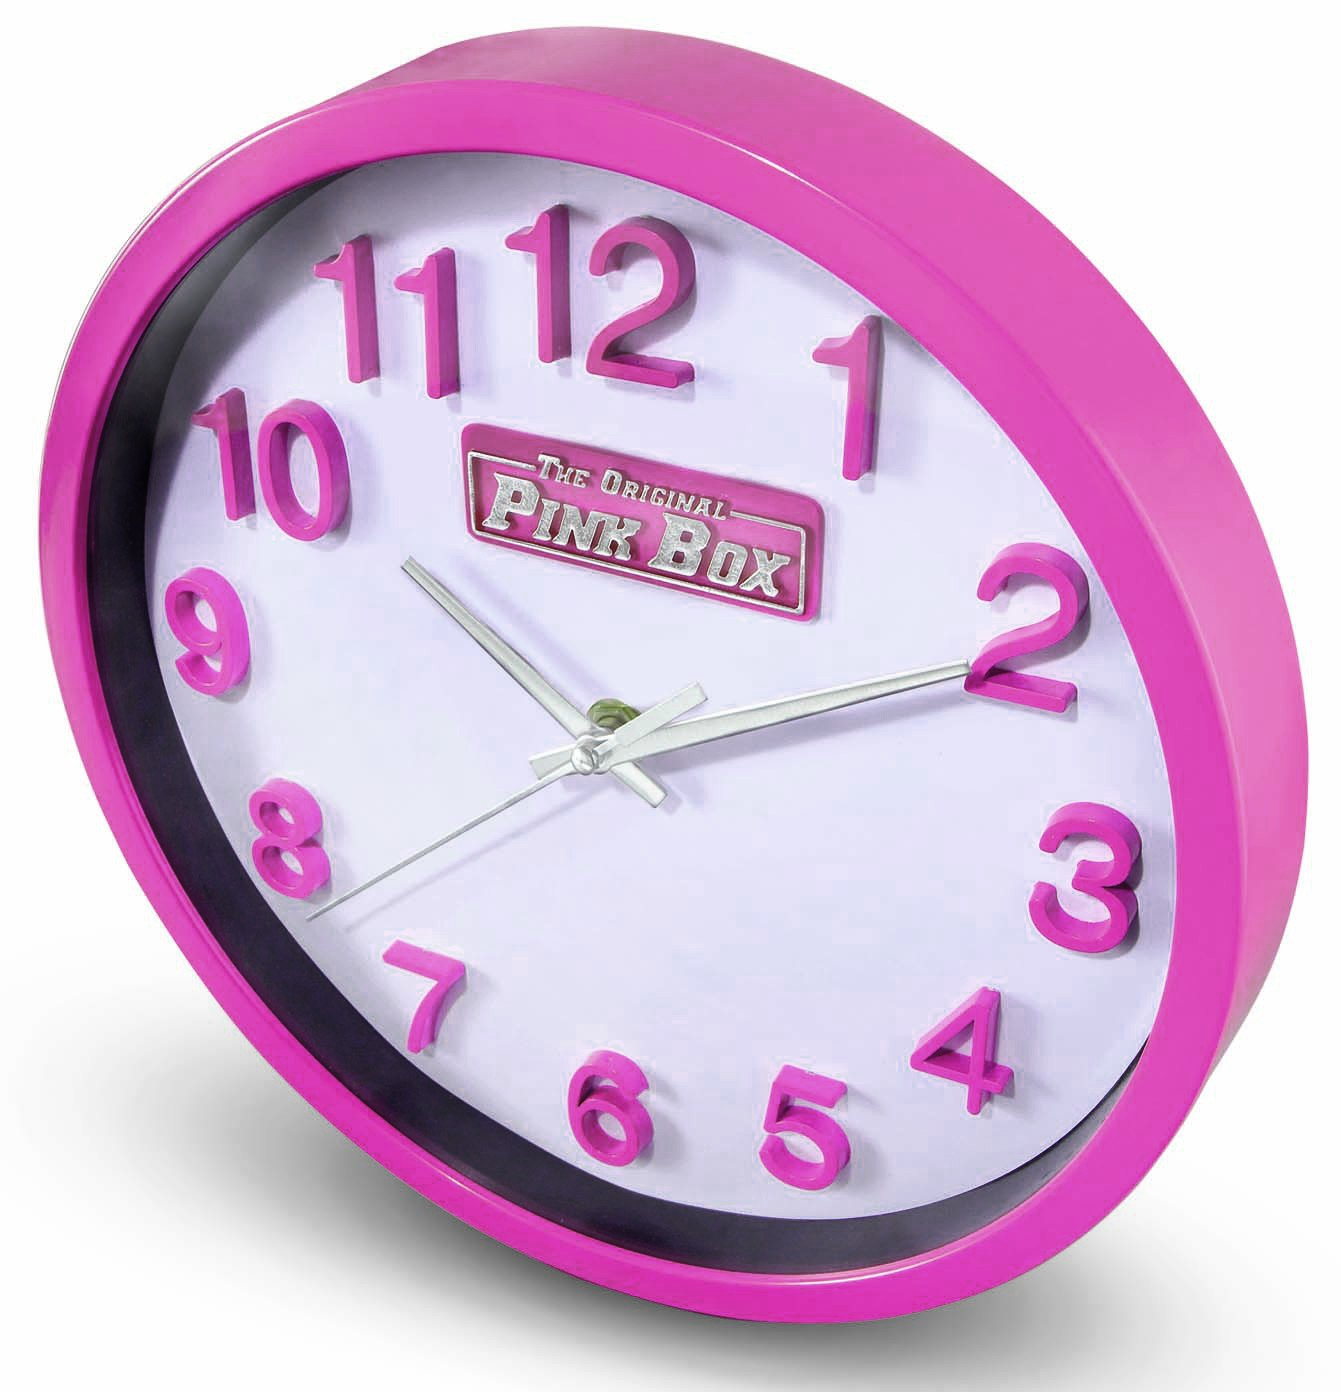 Amazon the original pink box pb12wc round wall clock 10 inch amazon the original pink box pb12wc round wall clock 10 inch pink home kitchen amipublicfo Image collections